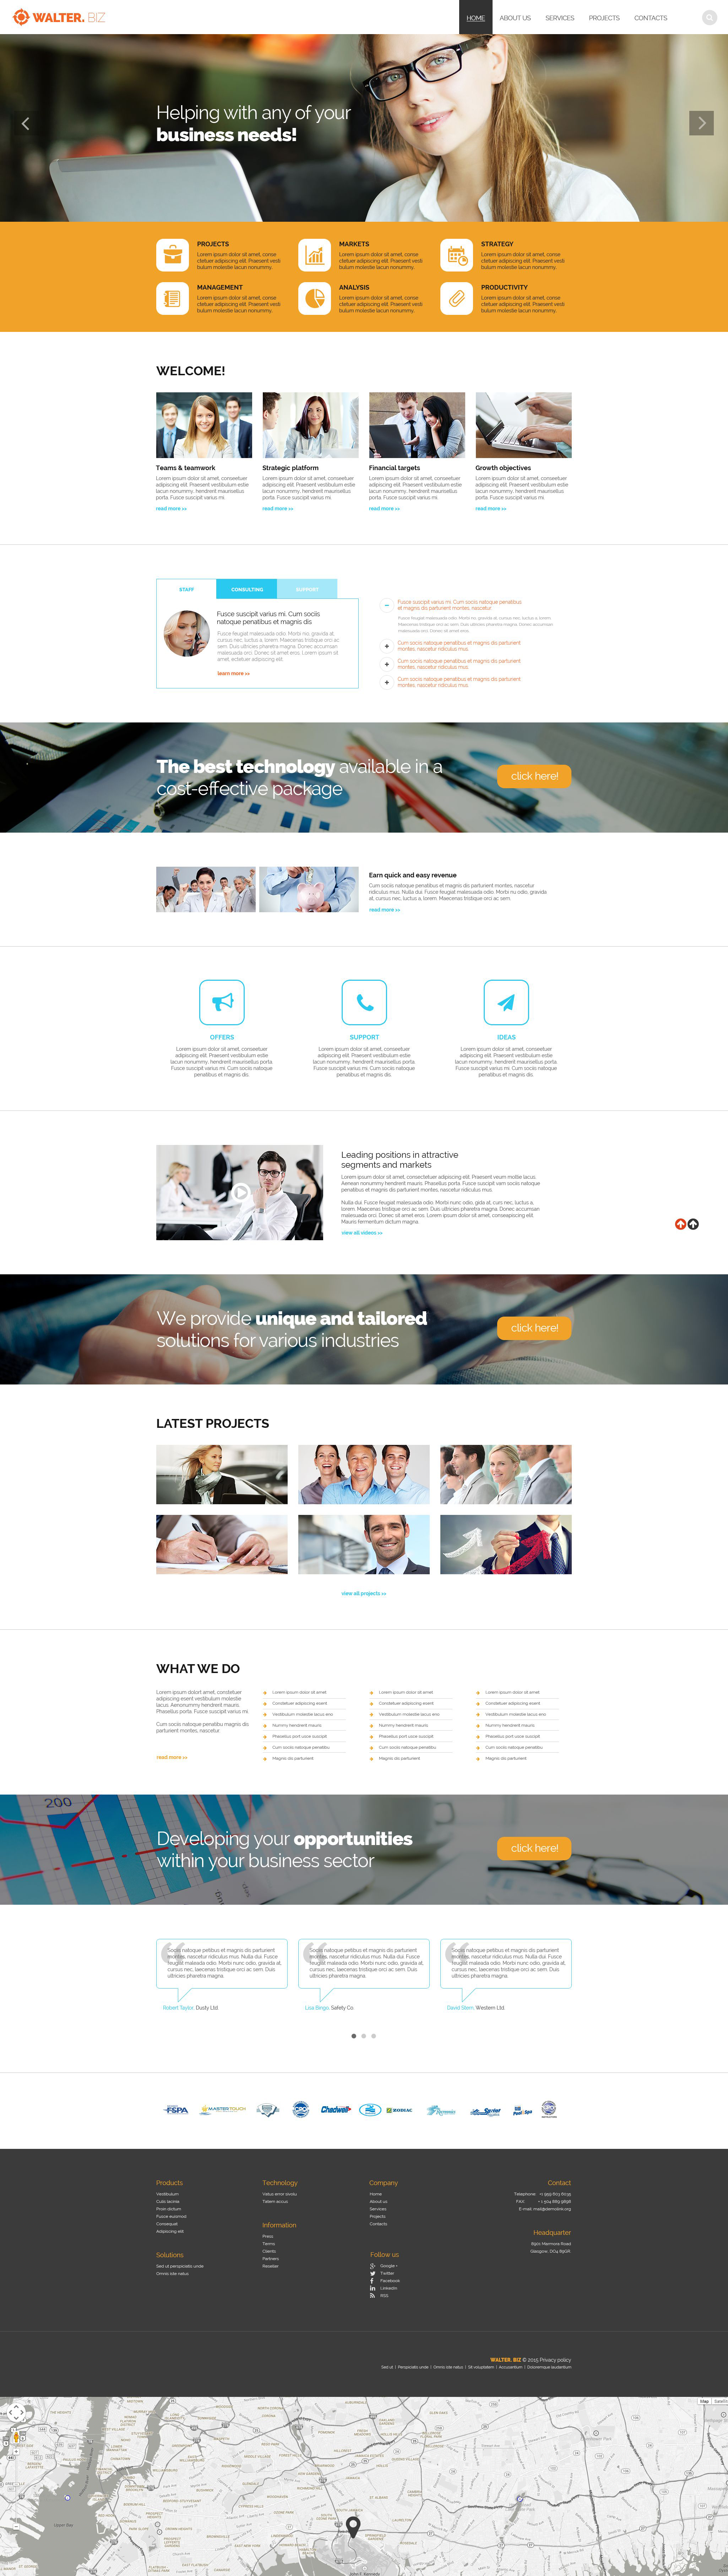 The Walter Business Bootstrap Design 53907, one of the best website templates of its kind (business, most popular), also known as walter business website template, consultant website template, success company website template, enterprise solution website template, business website template, industry website template, technical website template, clients website template, customer support website template, automate website template, flow website template, services website template, plug-in website template, flex website template, profile website template, principles website template, web products website template, technology system and related with walter business, consultant, success company, enterprise solution, business, industry, technical, clients, customer support, automate, flow, services, plug-in, flex, profile, principles, web products, technology system, etc.